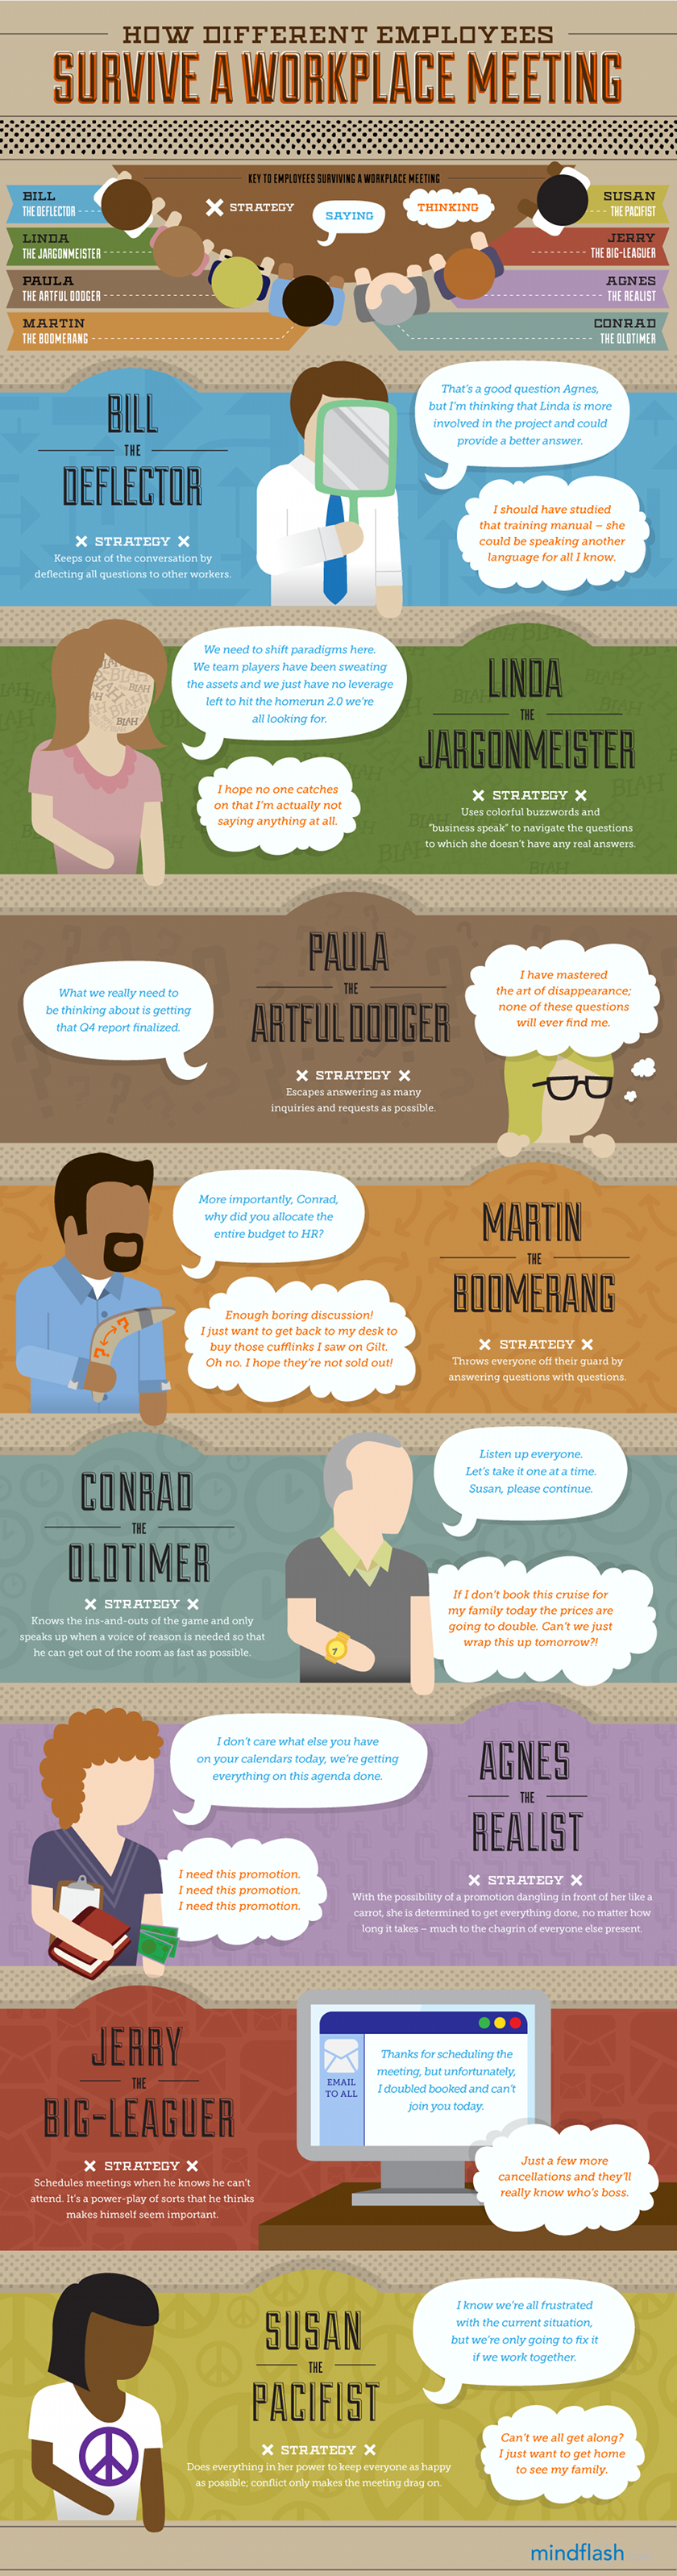 How Different Employees Survive A Workplace Meeting - infografica